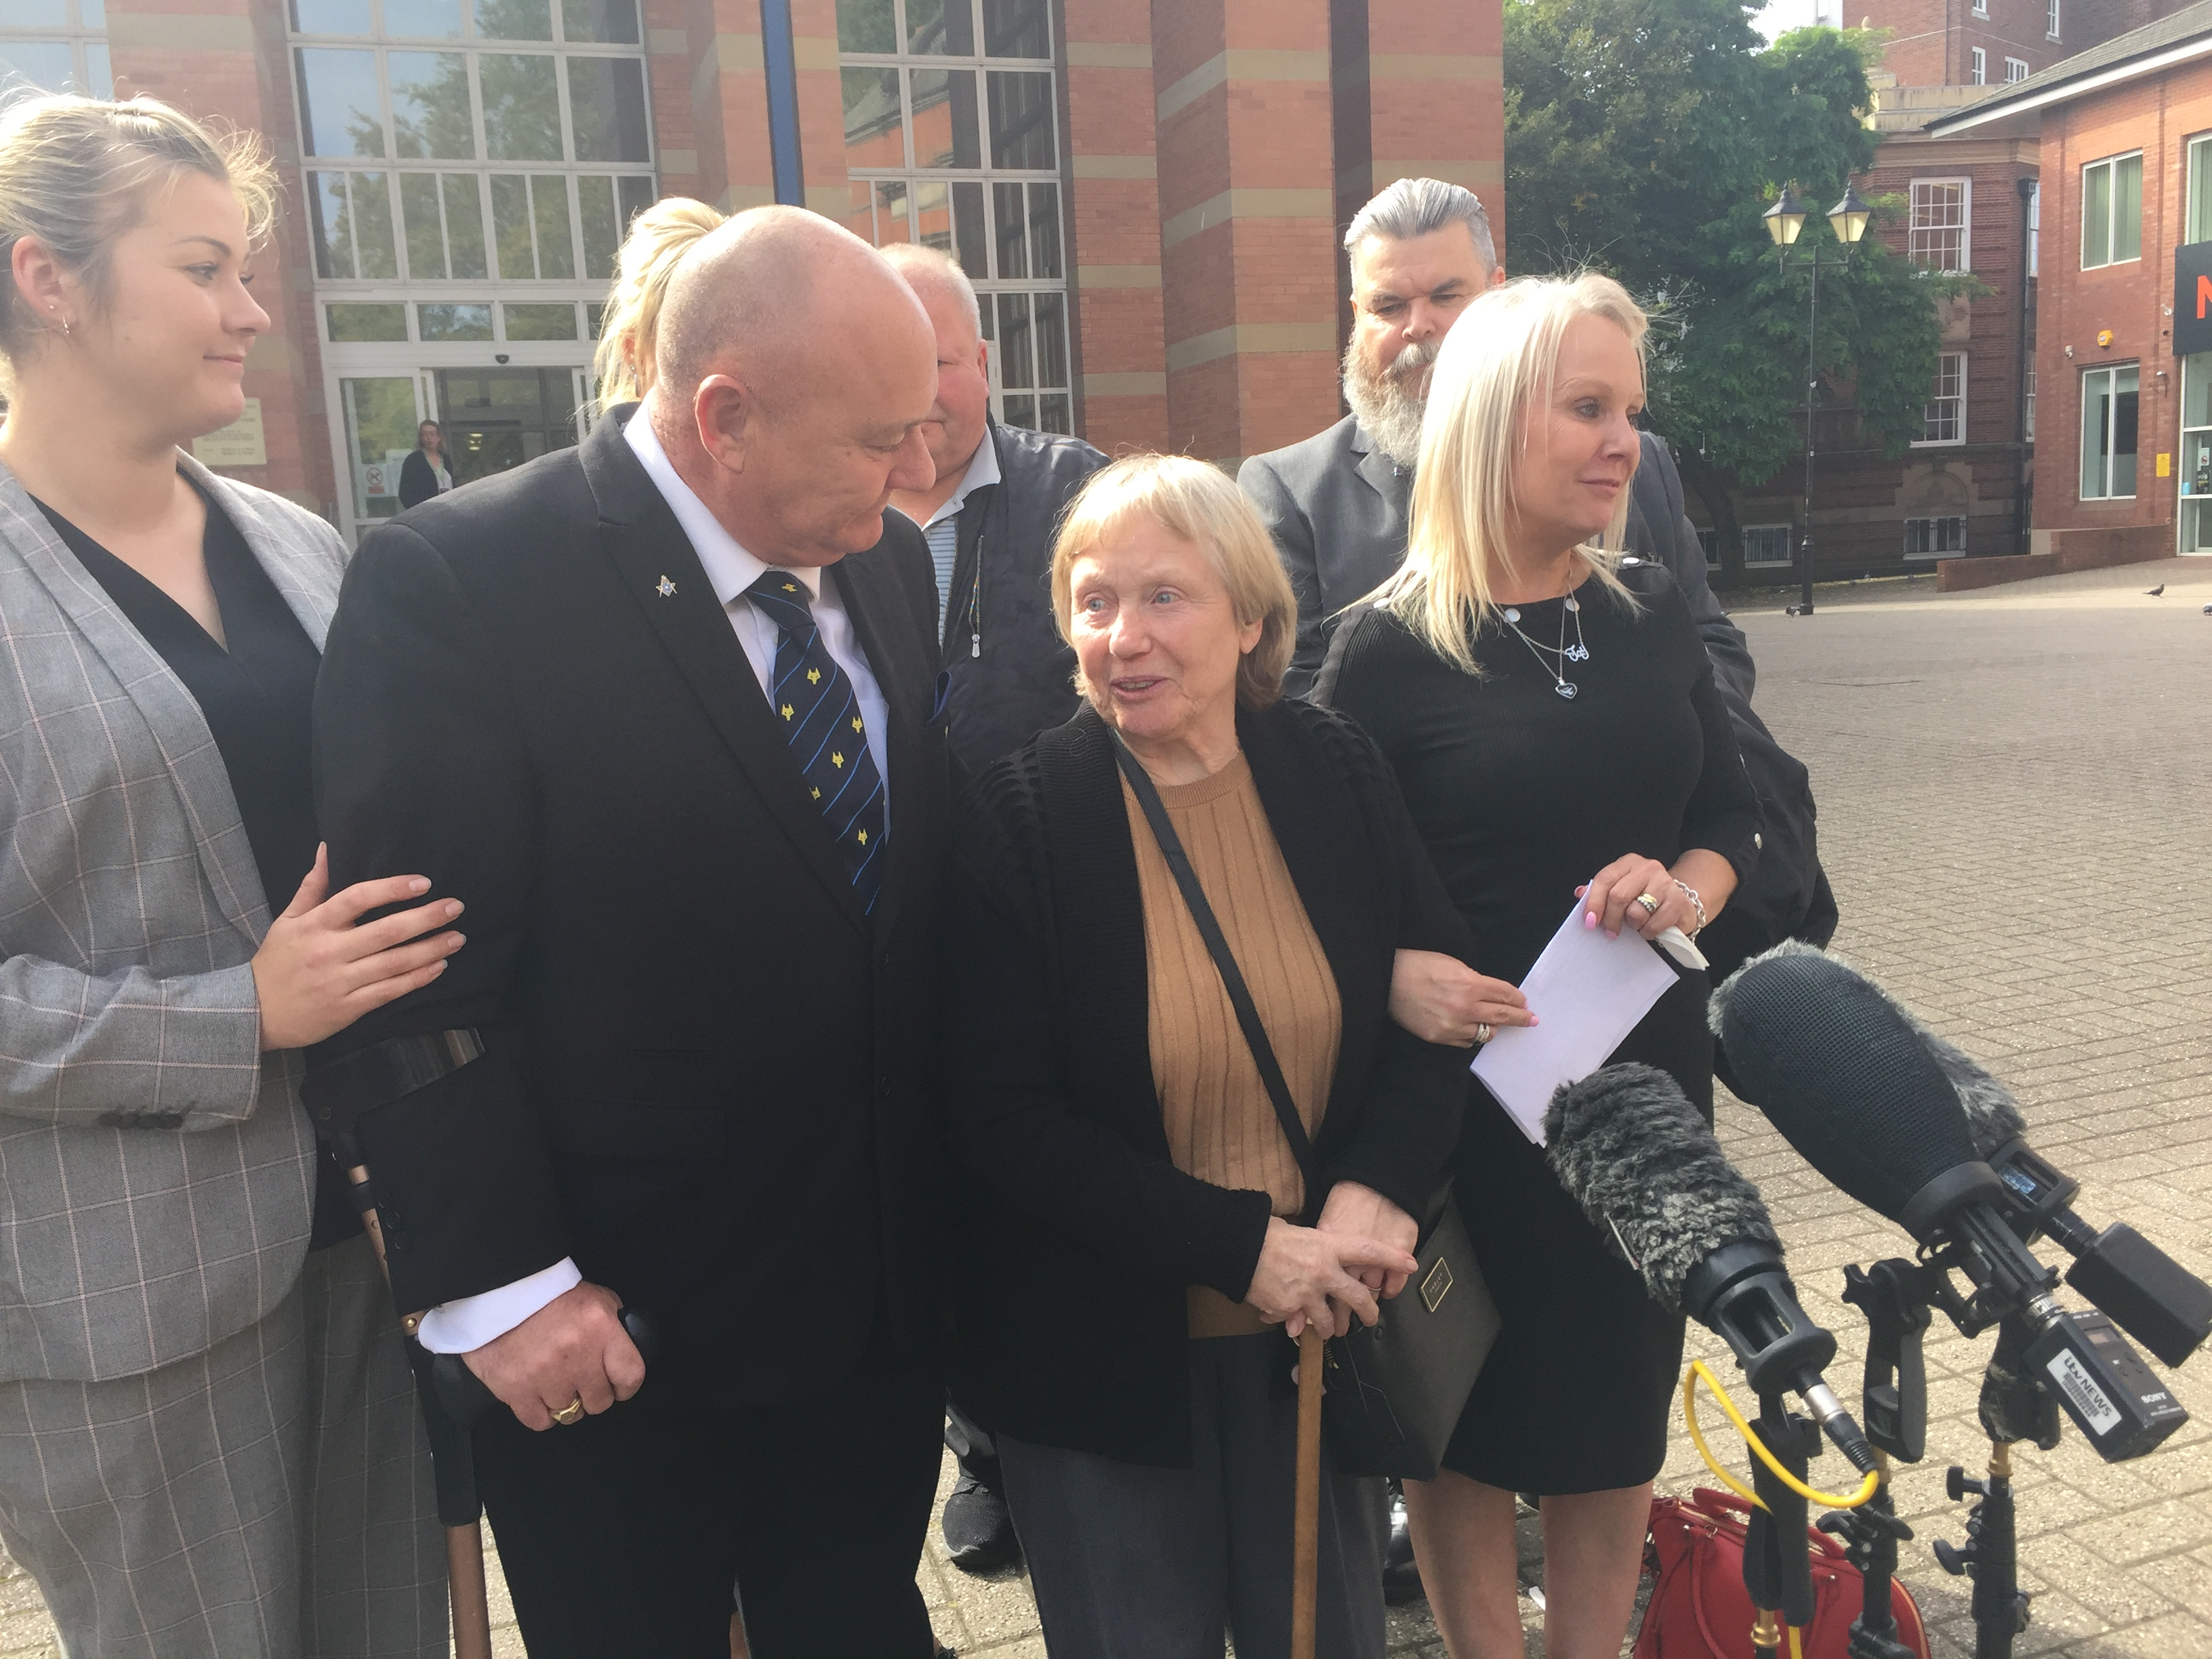 Mavis Eccleston outside Stafford Crown Court after her acquittal, flanked by her daughter Joy and son Kevin